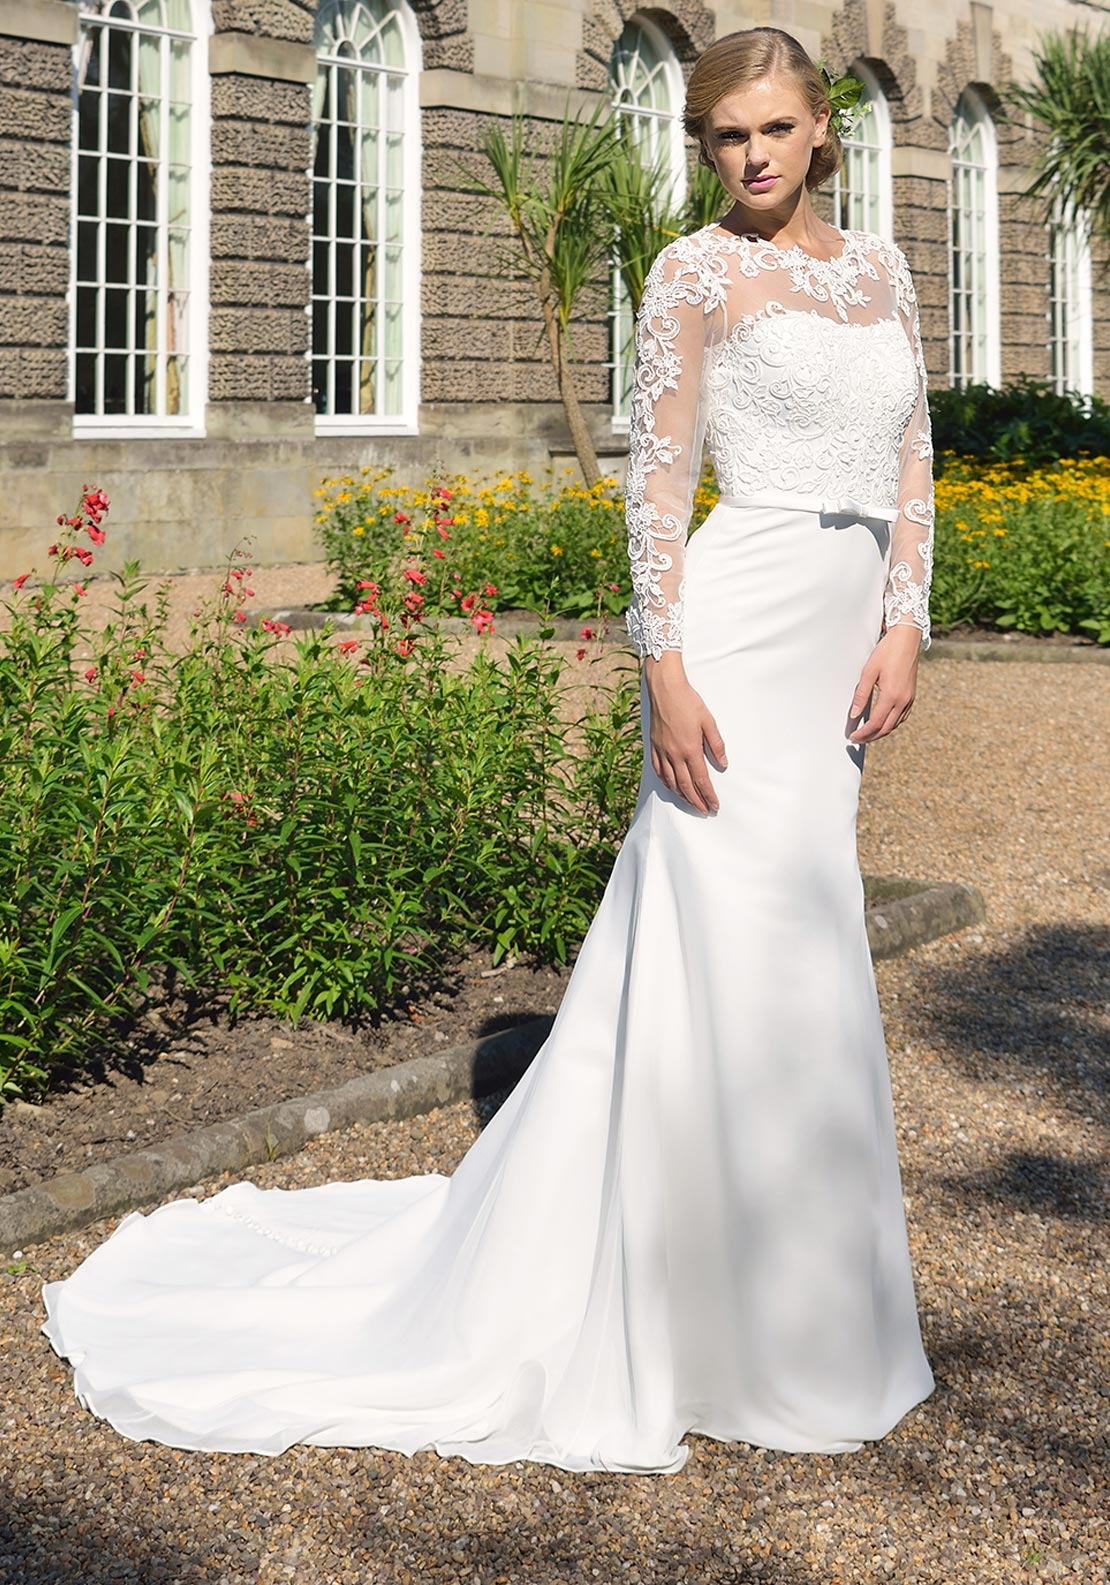 Catherine Parry 2017 Collection 1707 Wedding Dress, Ivory